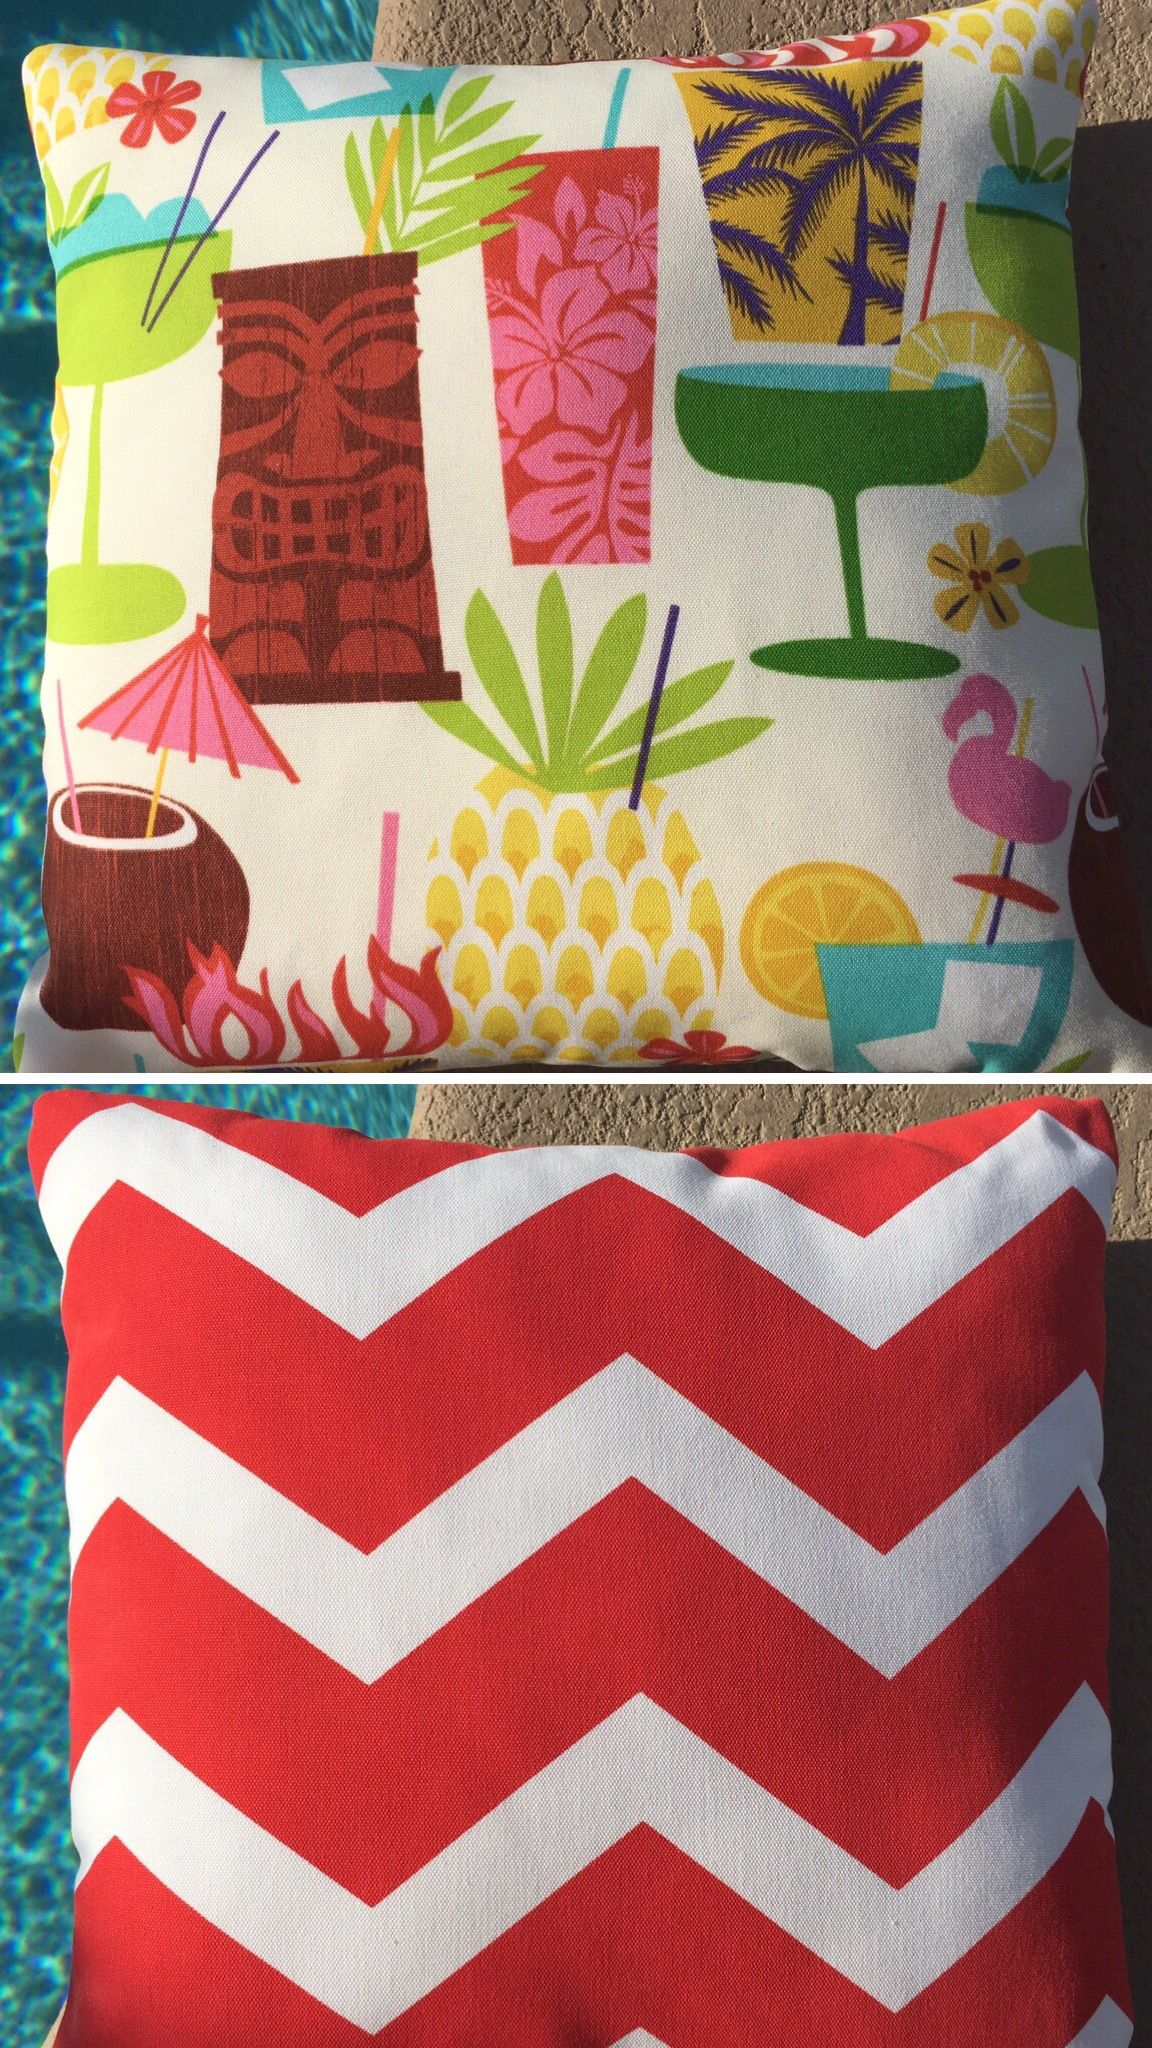 Reversible pillow covers double your decor options! Fun Tiki drink print reverses to chevron. Outdoor fabric perfect for Summer luau parties and entertaining: pool space, boat, patio and indoors. Invisible zipper closure. Handmade in Orlando, Florida.